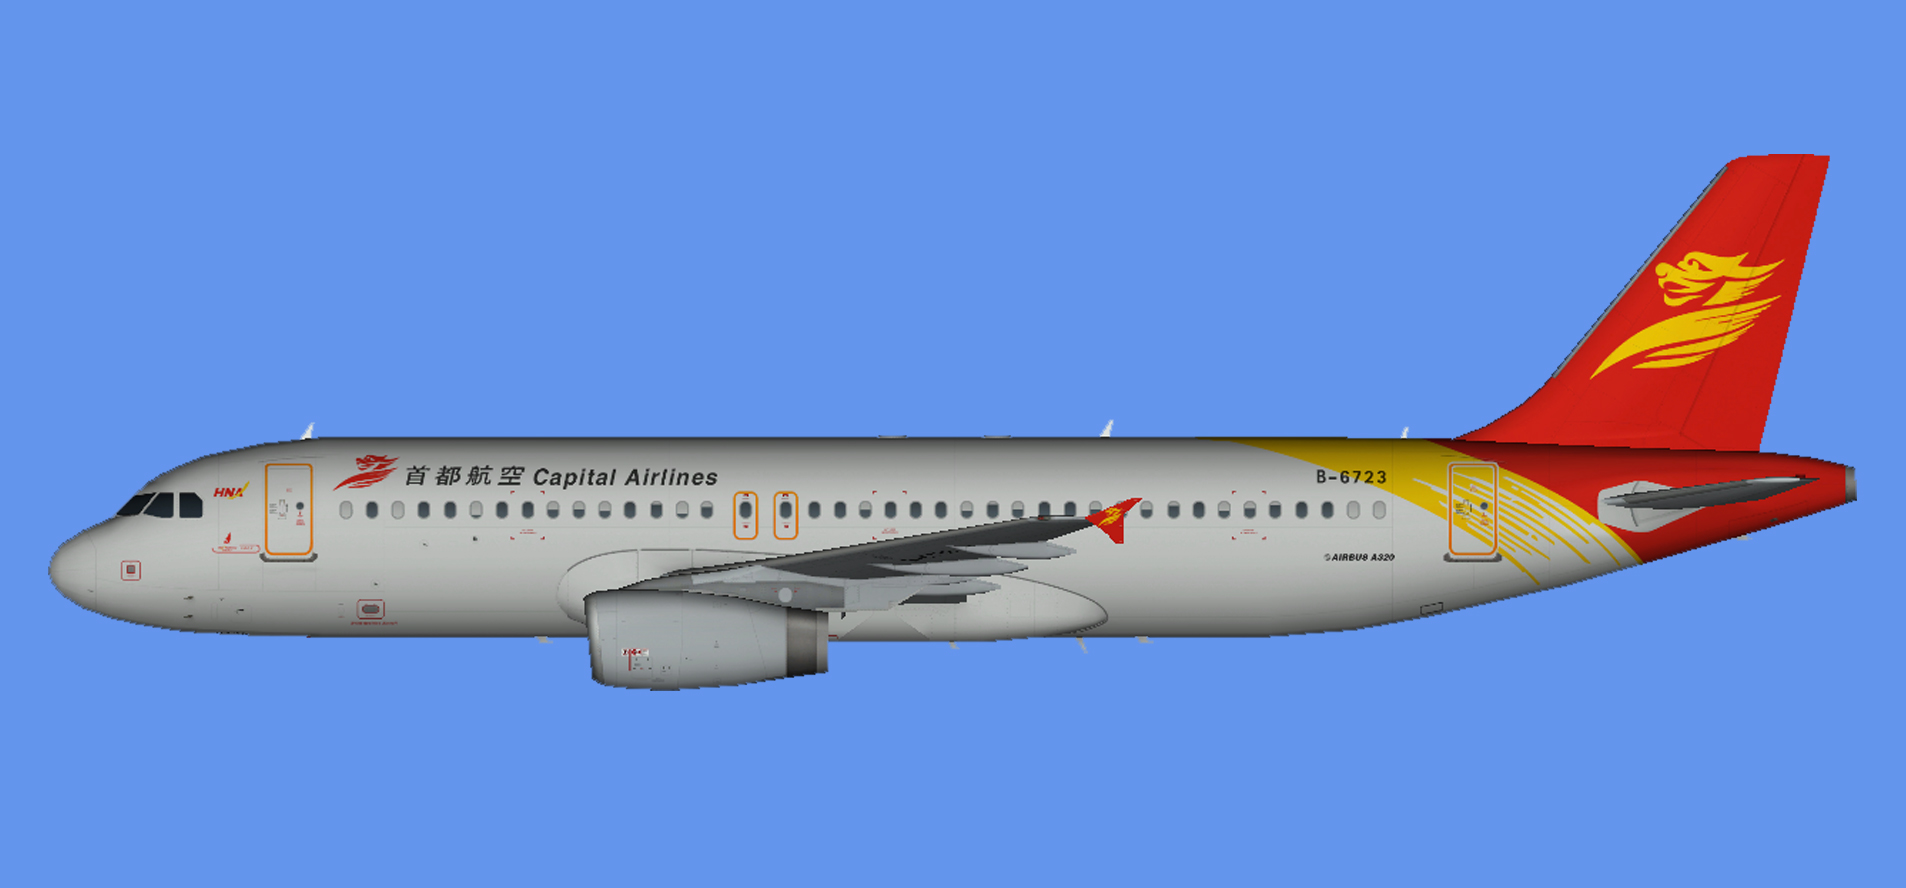 Capital Airlines Airbus A320 IAE